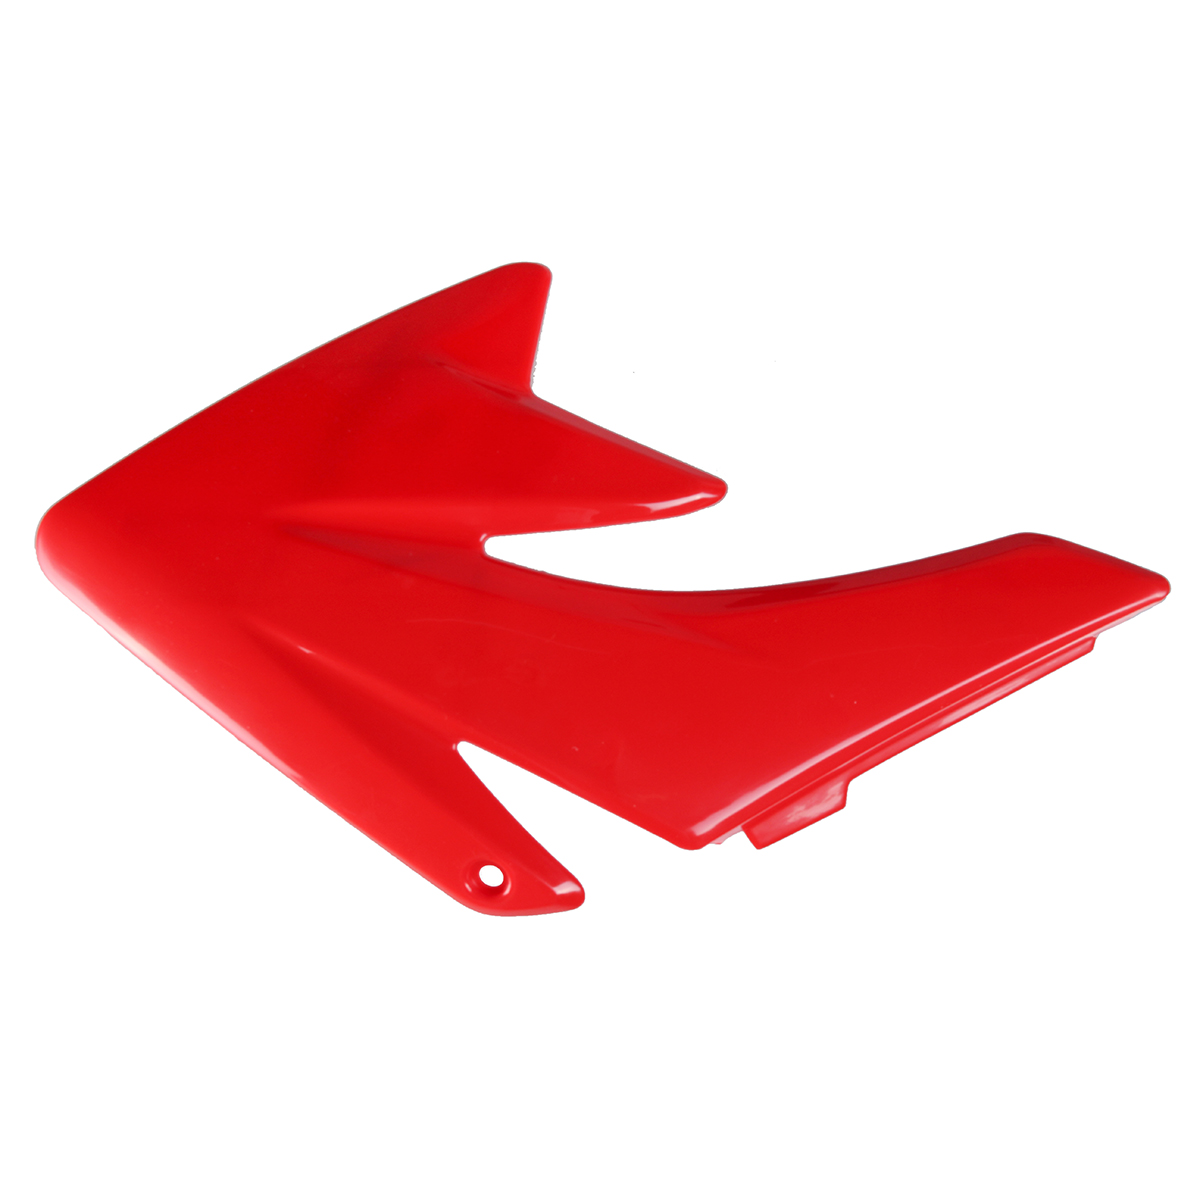 Motorcycle Fender Fairing Set For CRF70 Pit Bike 125cc 140cc 160cc